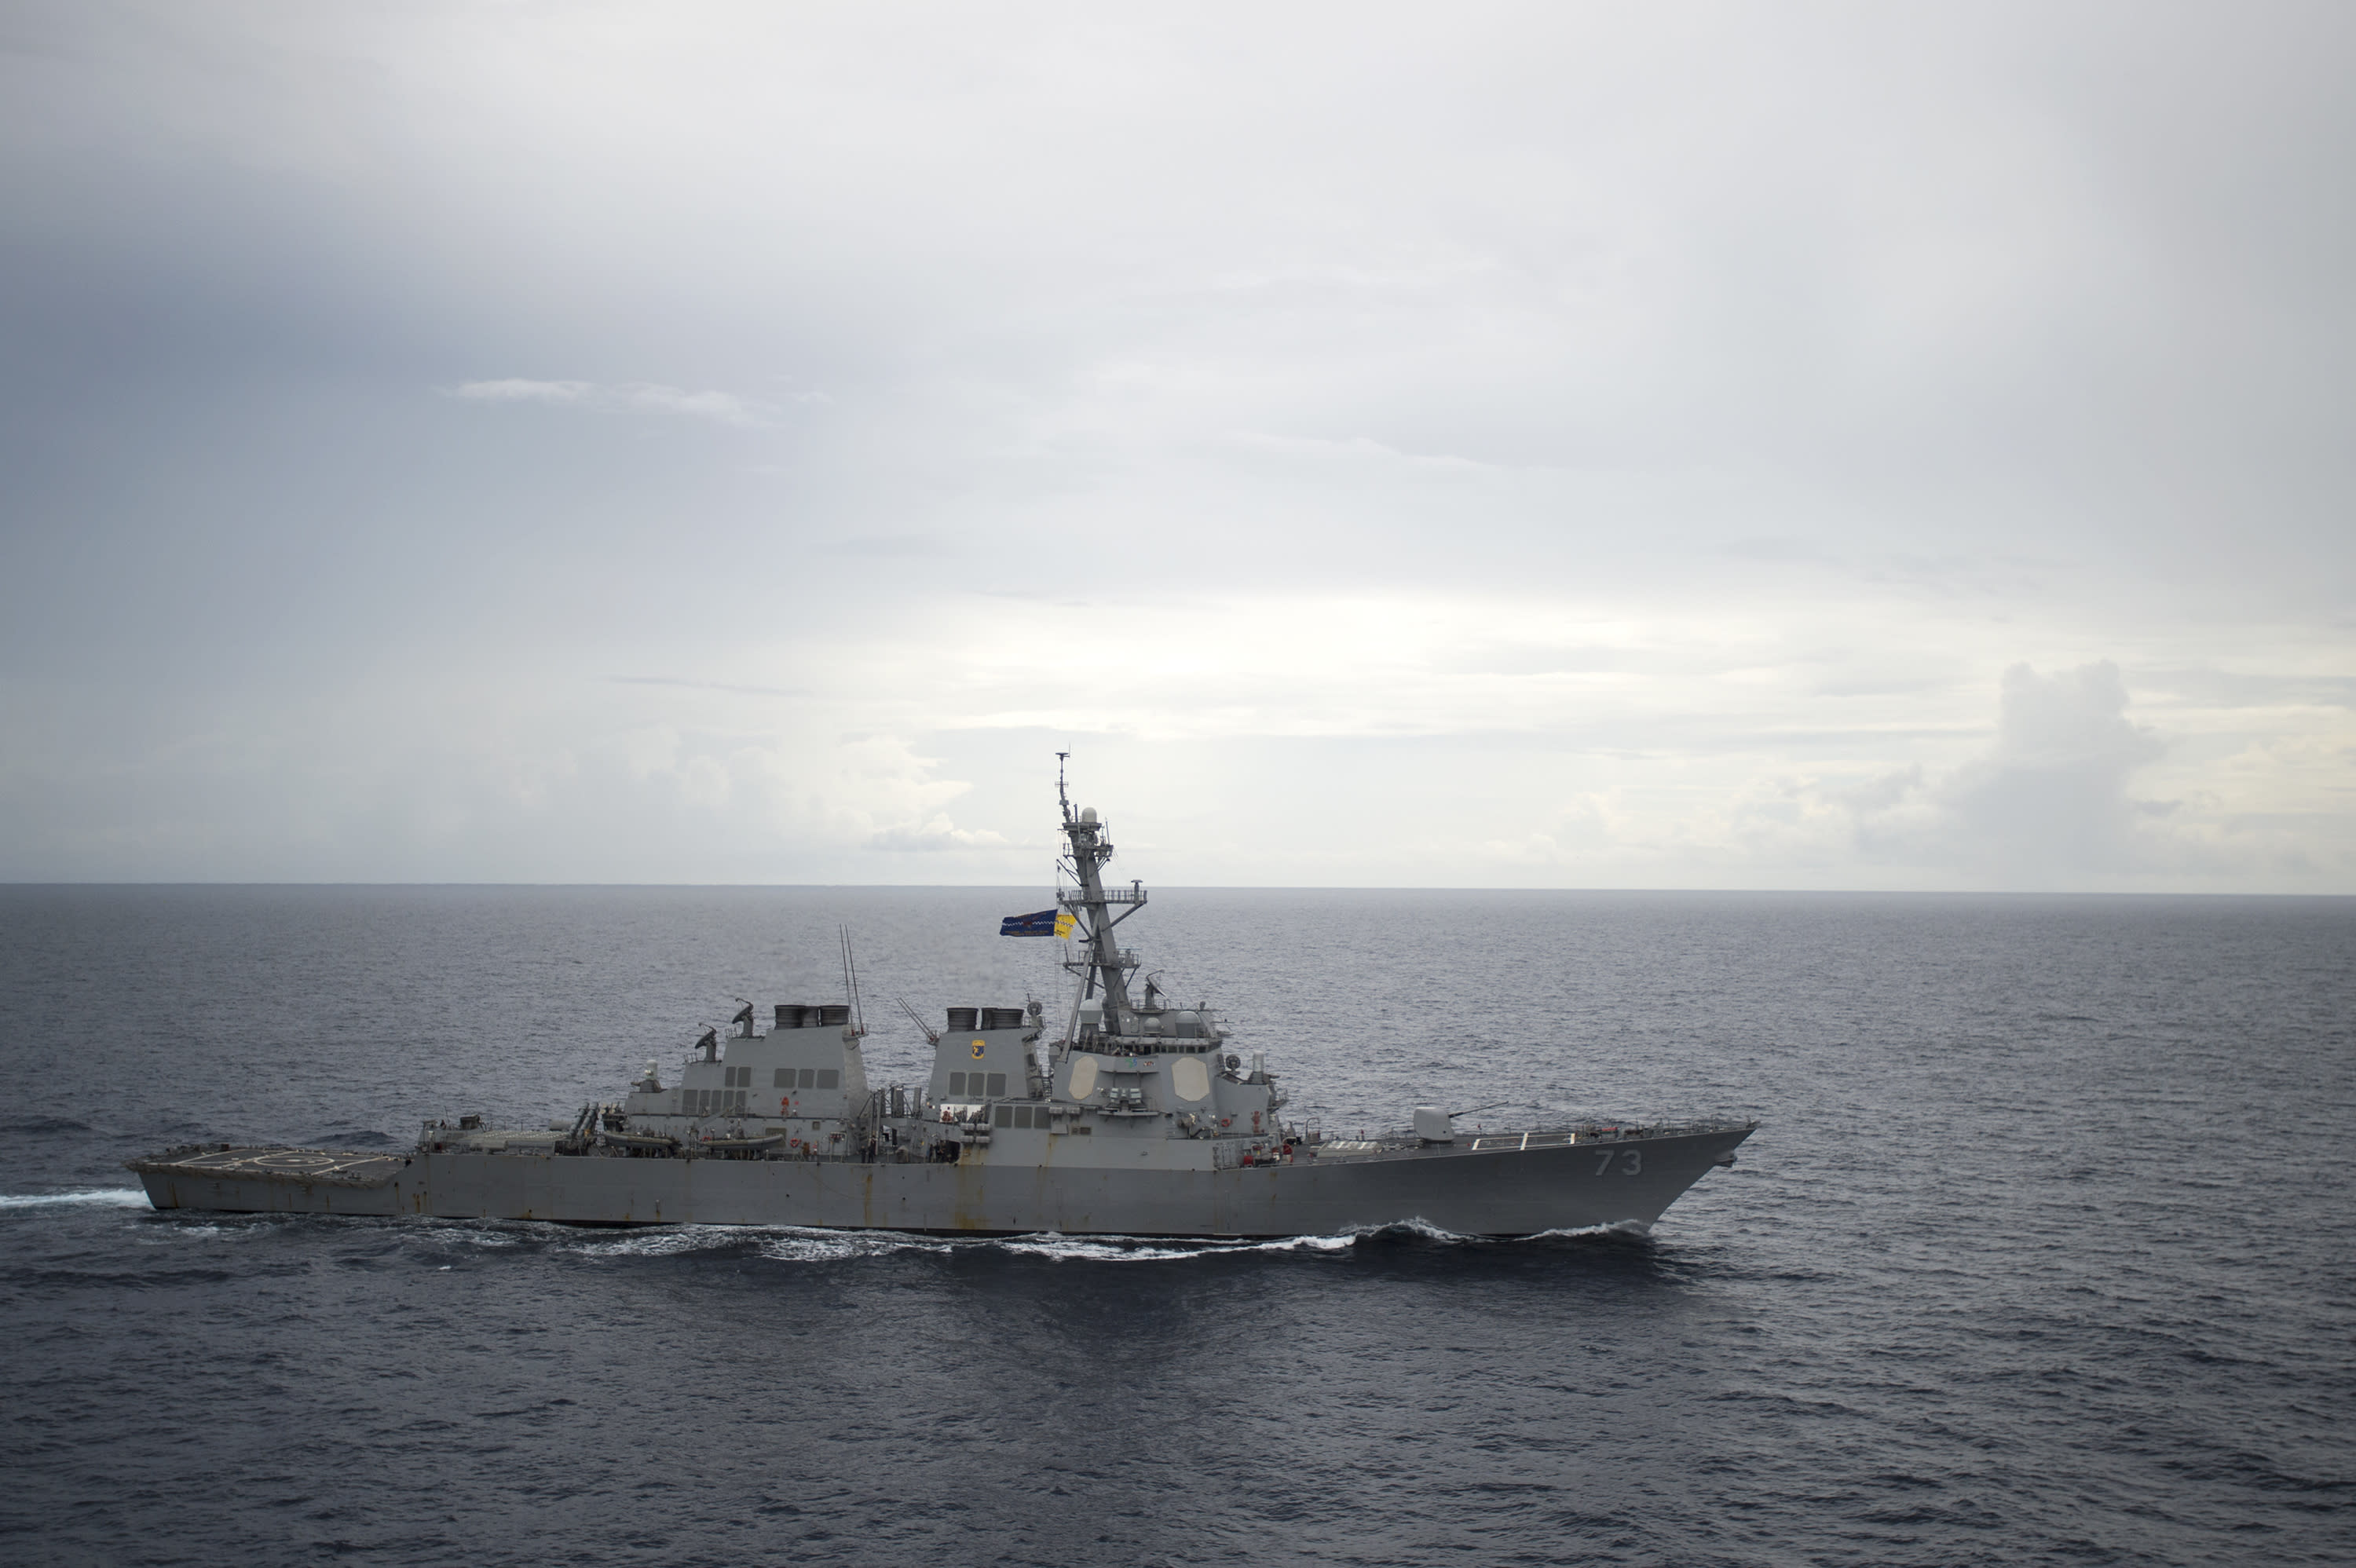 U.S. and Chinese warships narrowly avoid high-seas collision